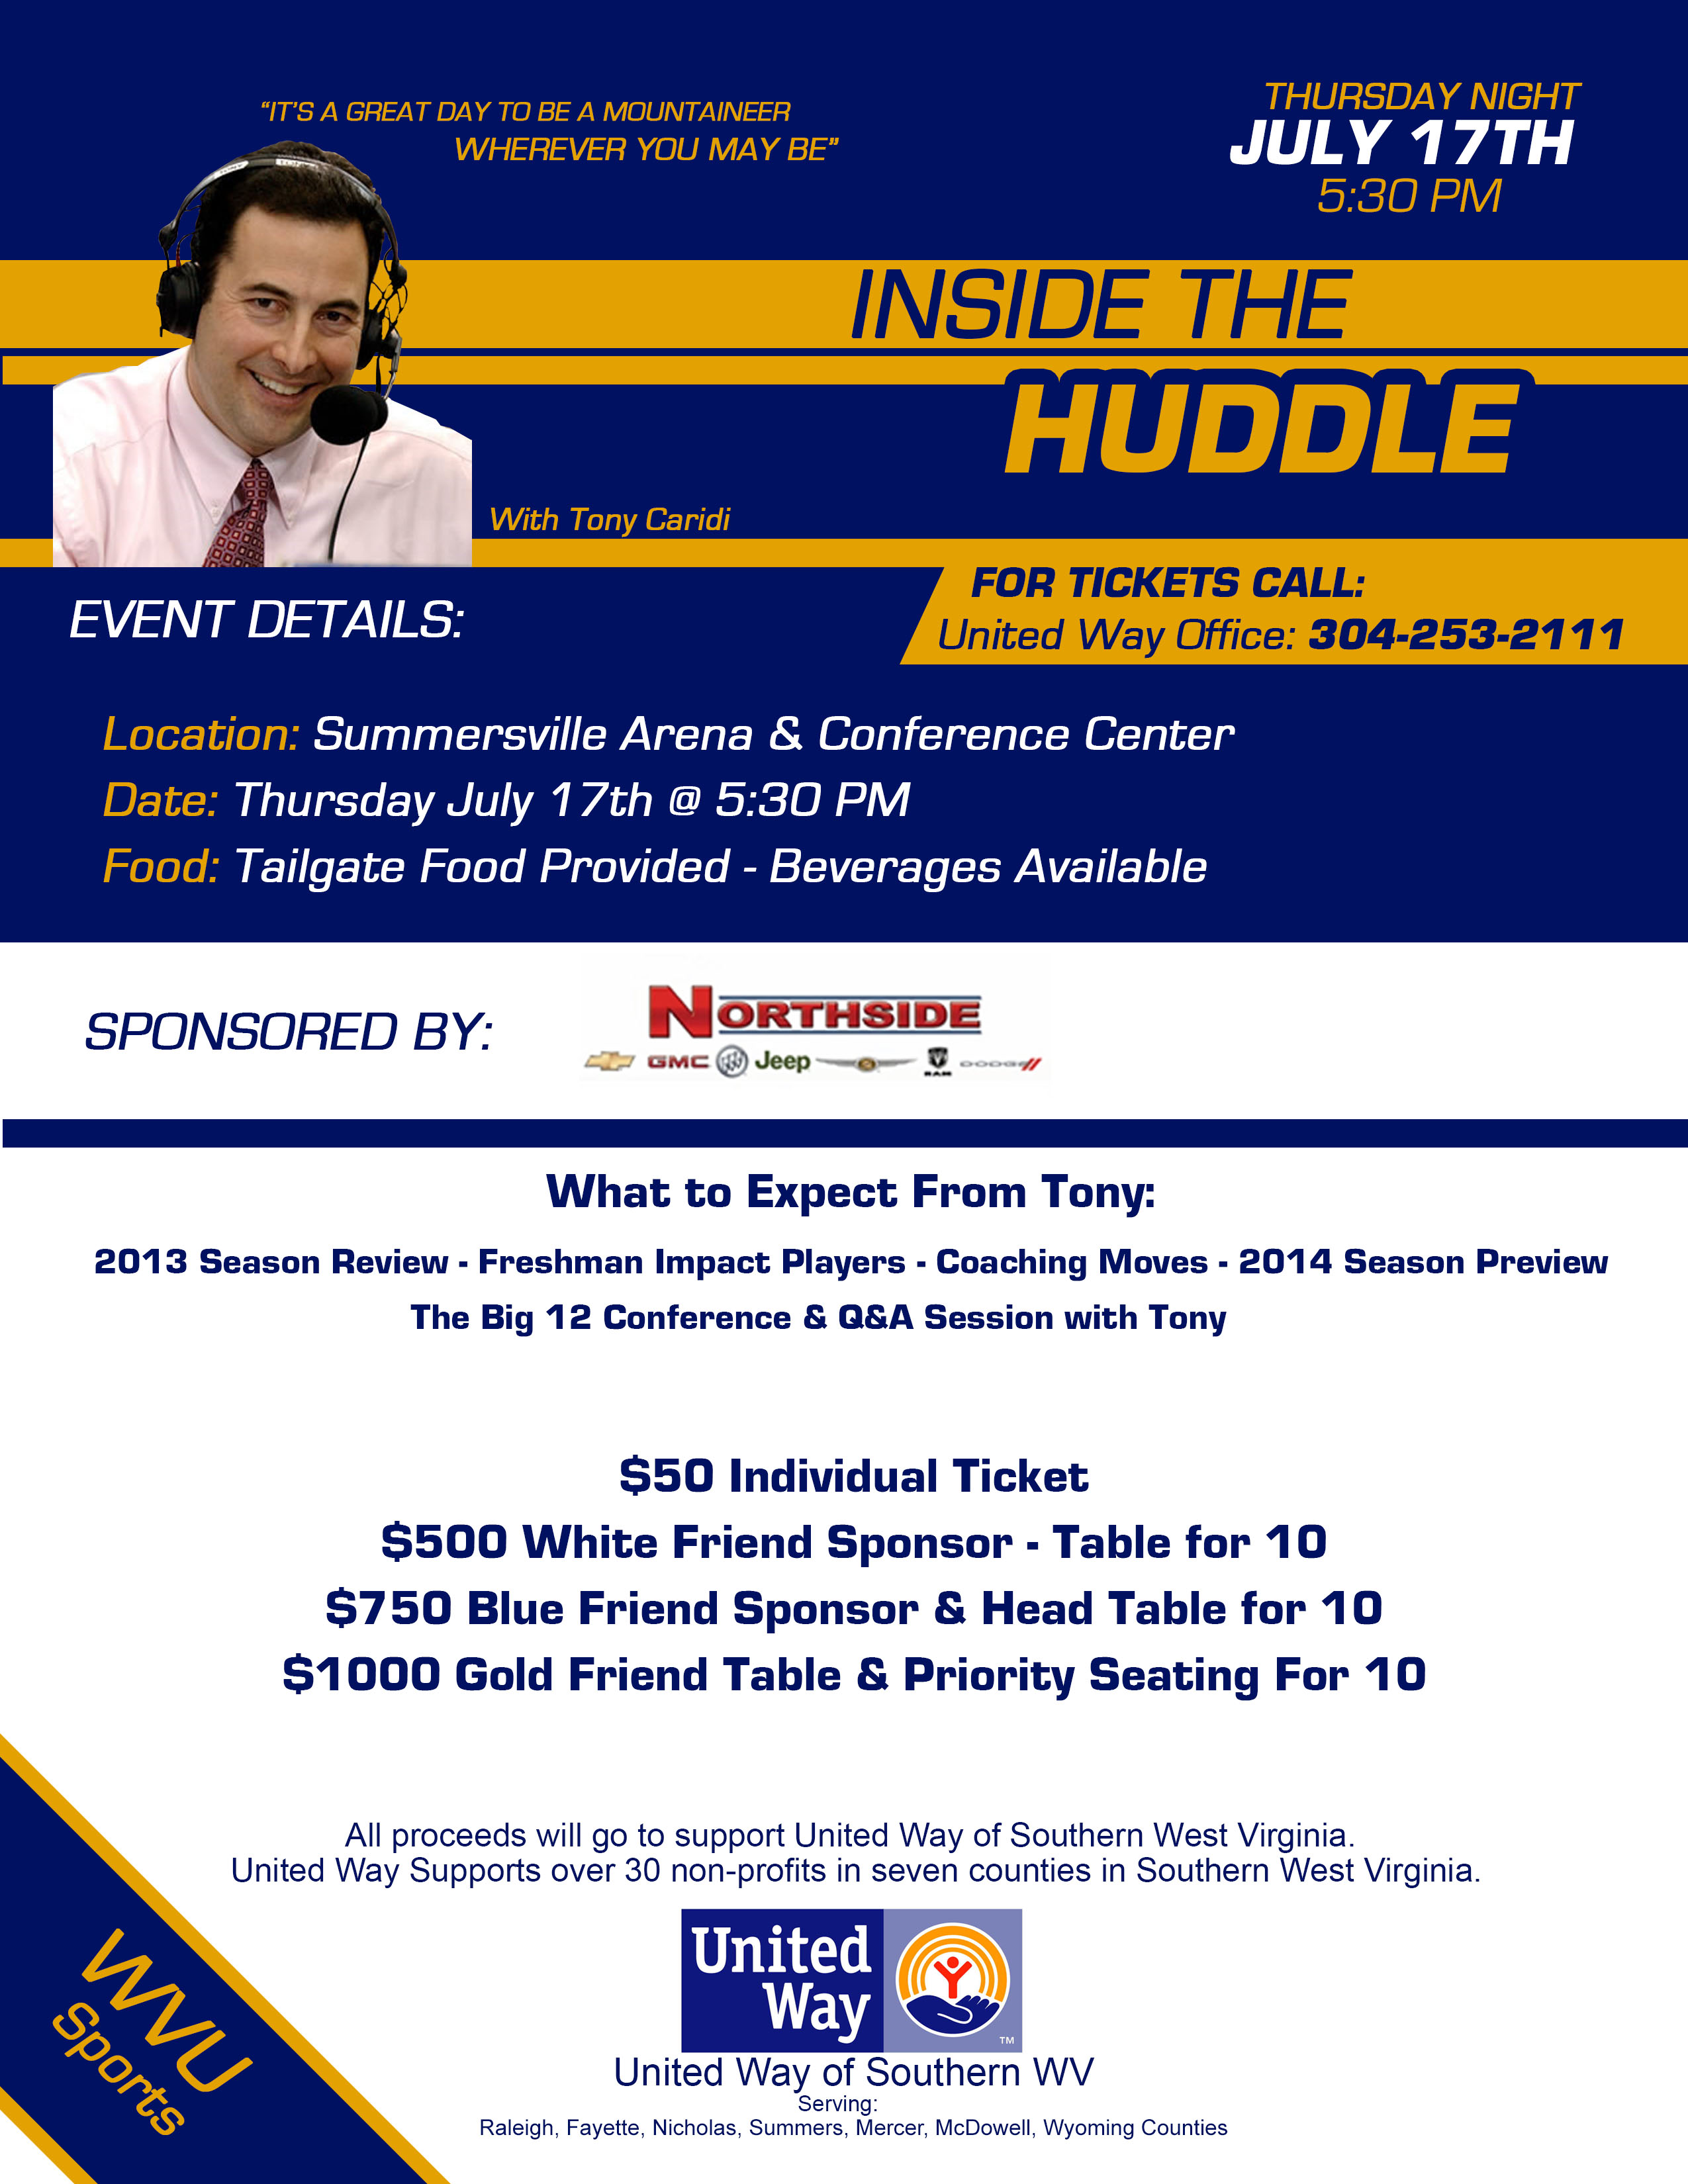 INSIDE THE HUDDLE FLYER